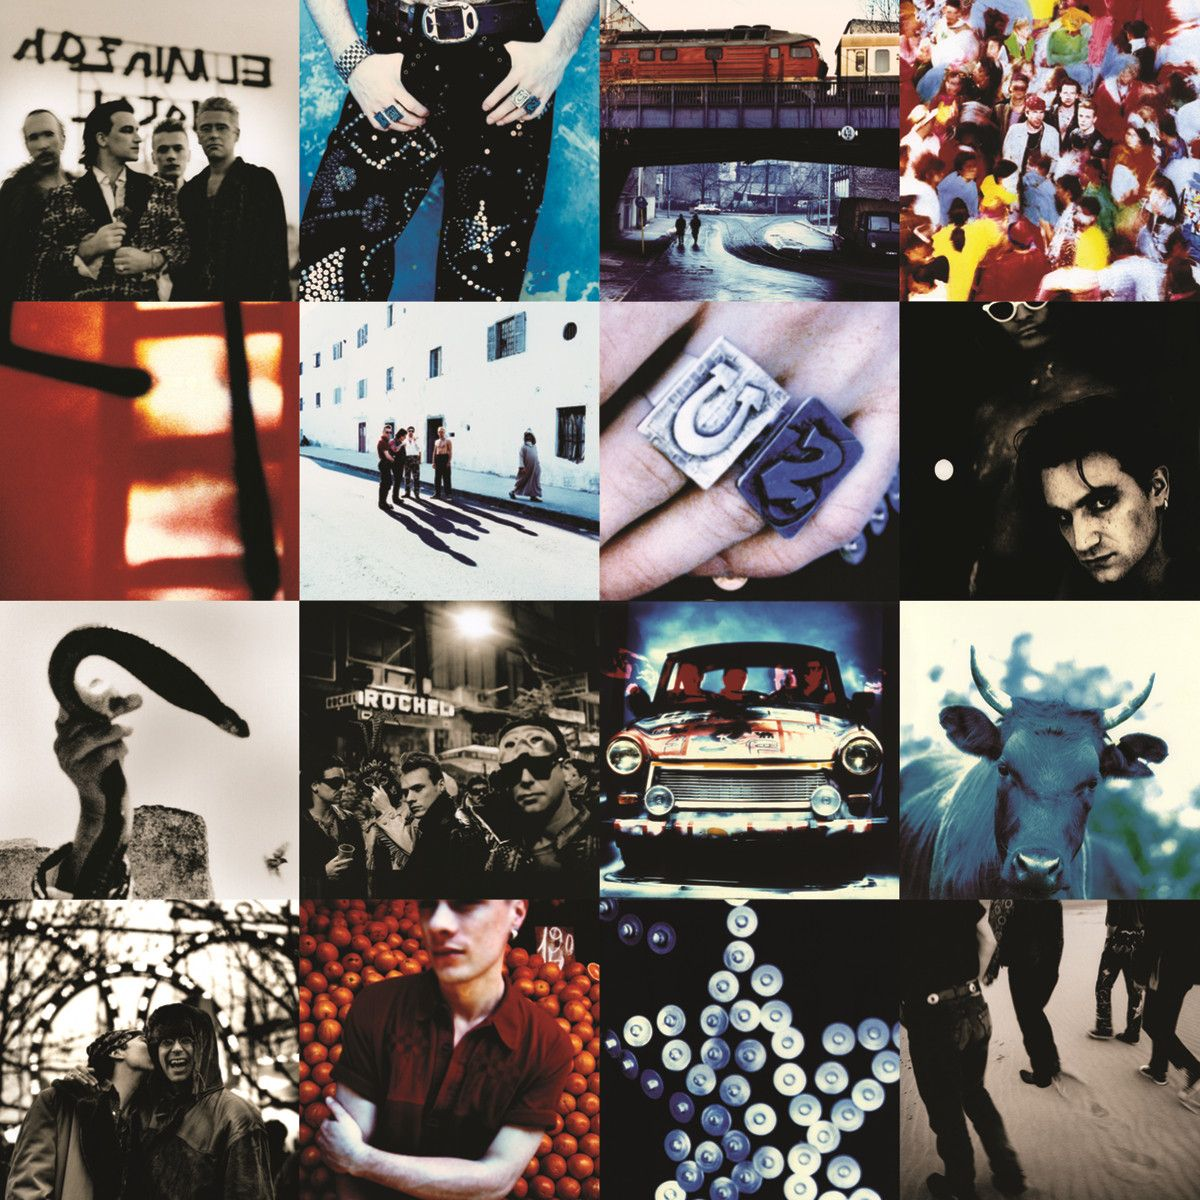 U2 - Achtung Baby (deluxe edition) album cover